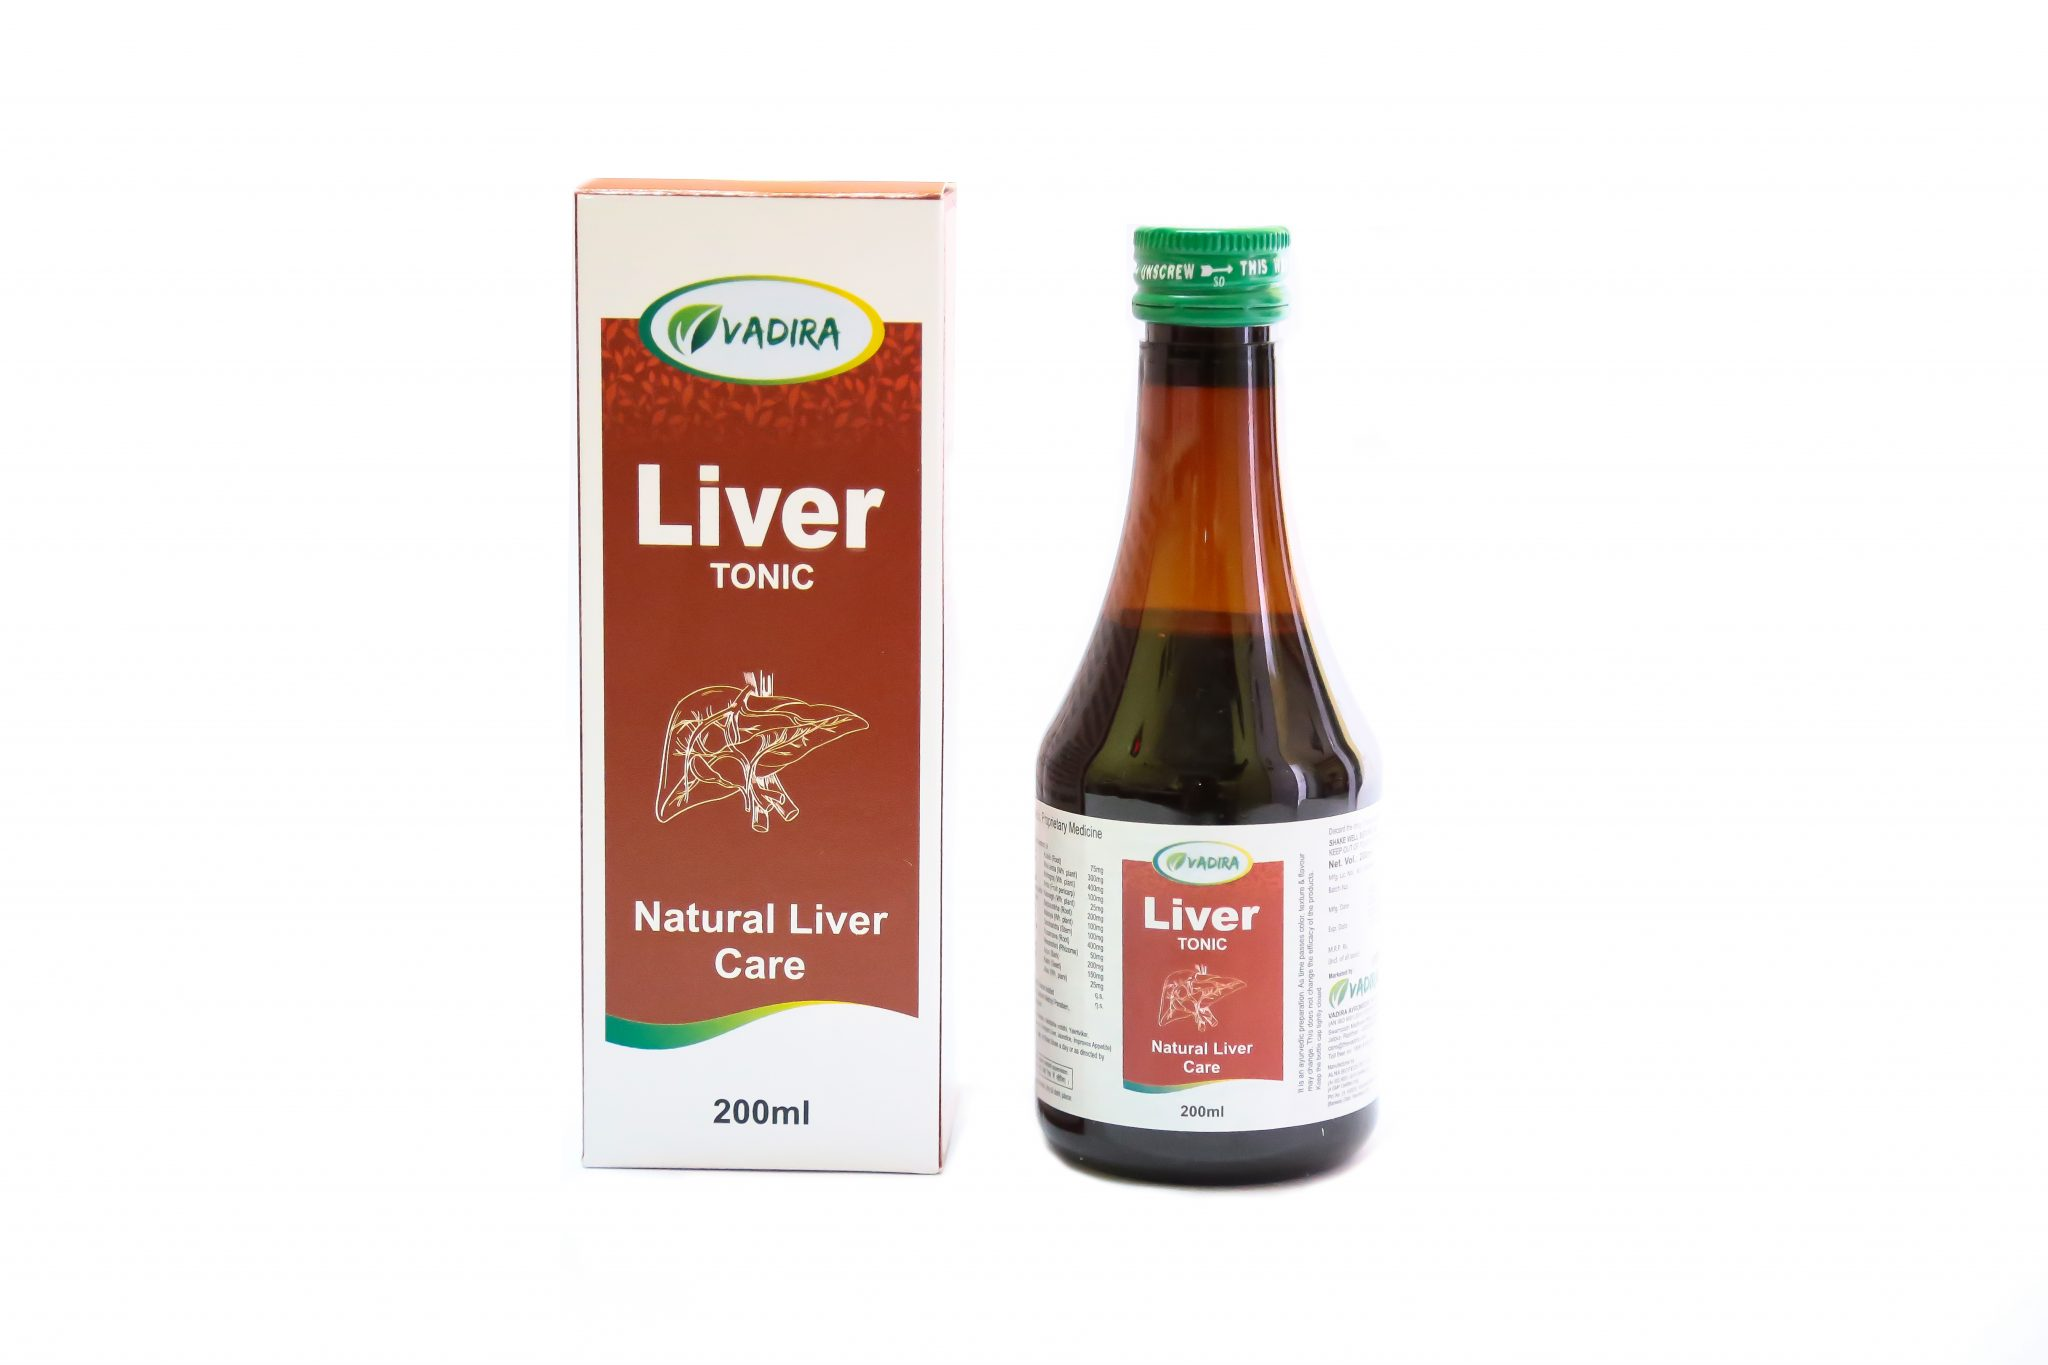 Vadira Ayurvedic Liver Tonic An Antidote For All Types Of Liver